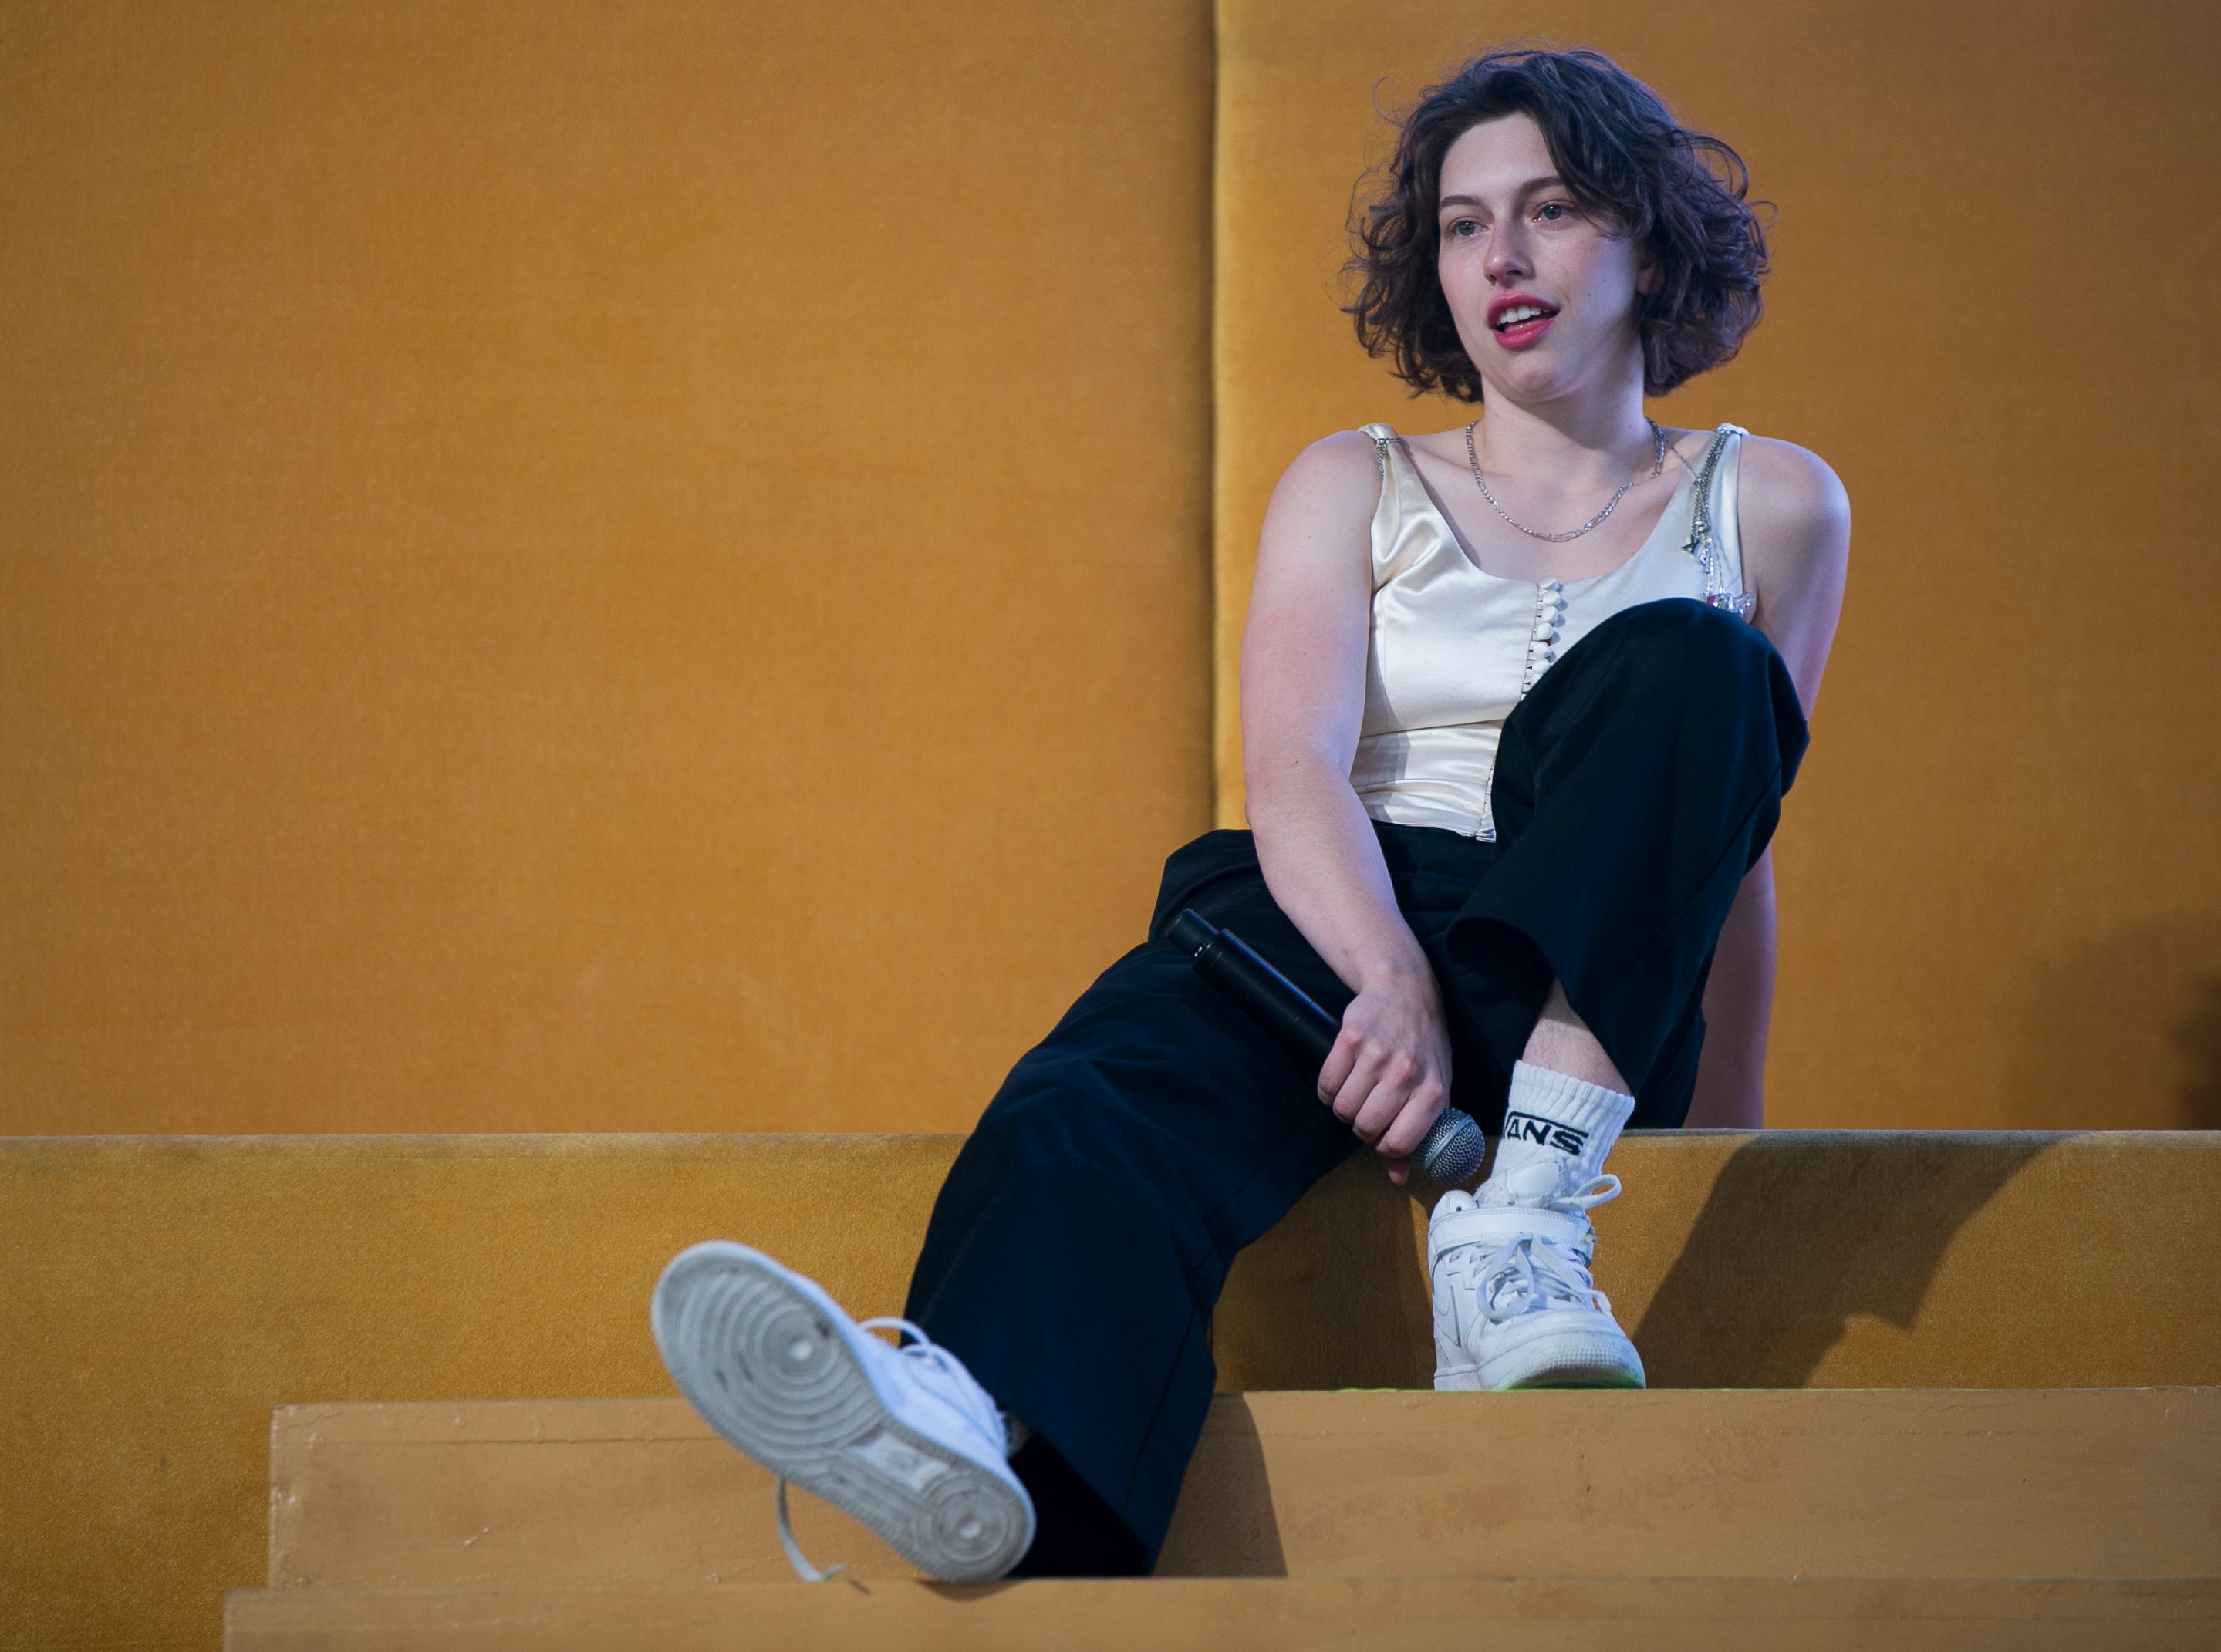 King Princess performs on the Mojave stage at the Coachella Valley Music and Arts Festival in Indio, Calif. on Fri. April 12, 2019.